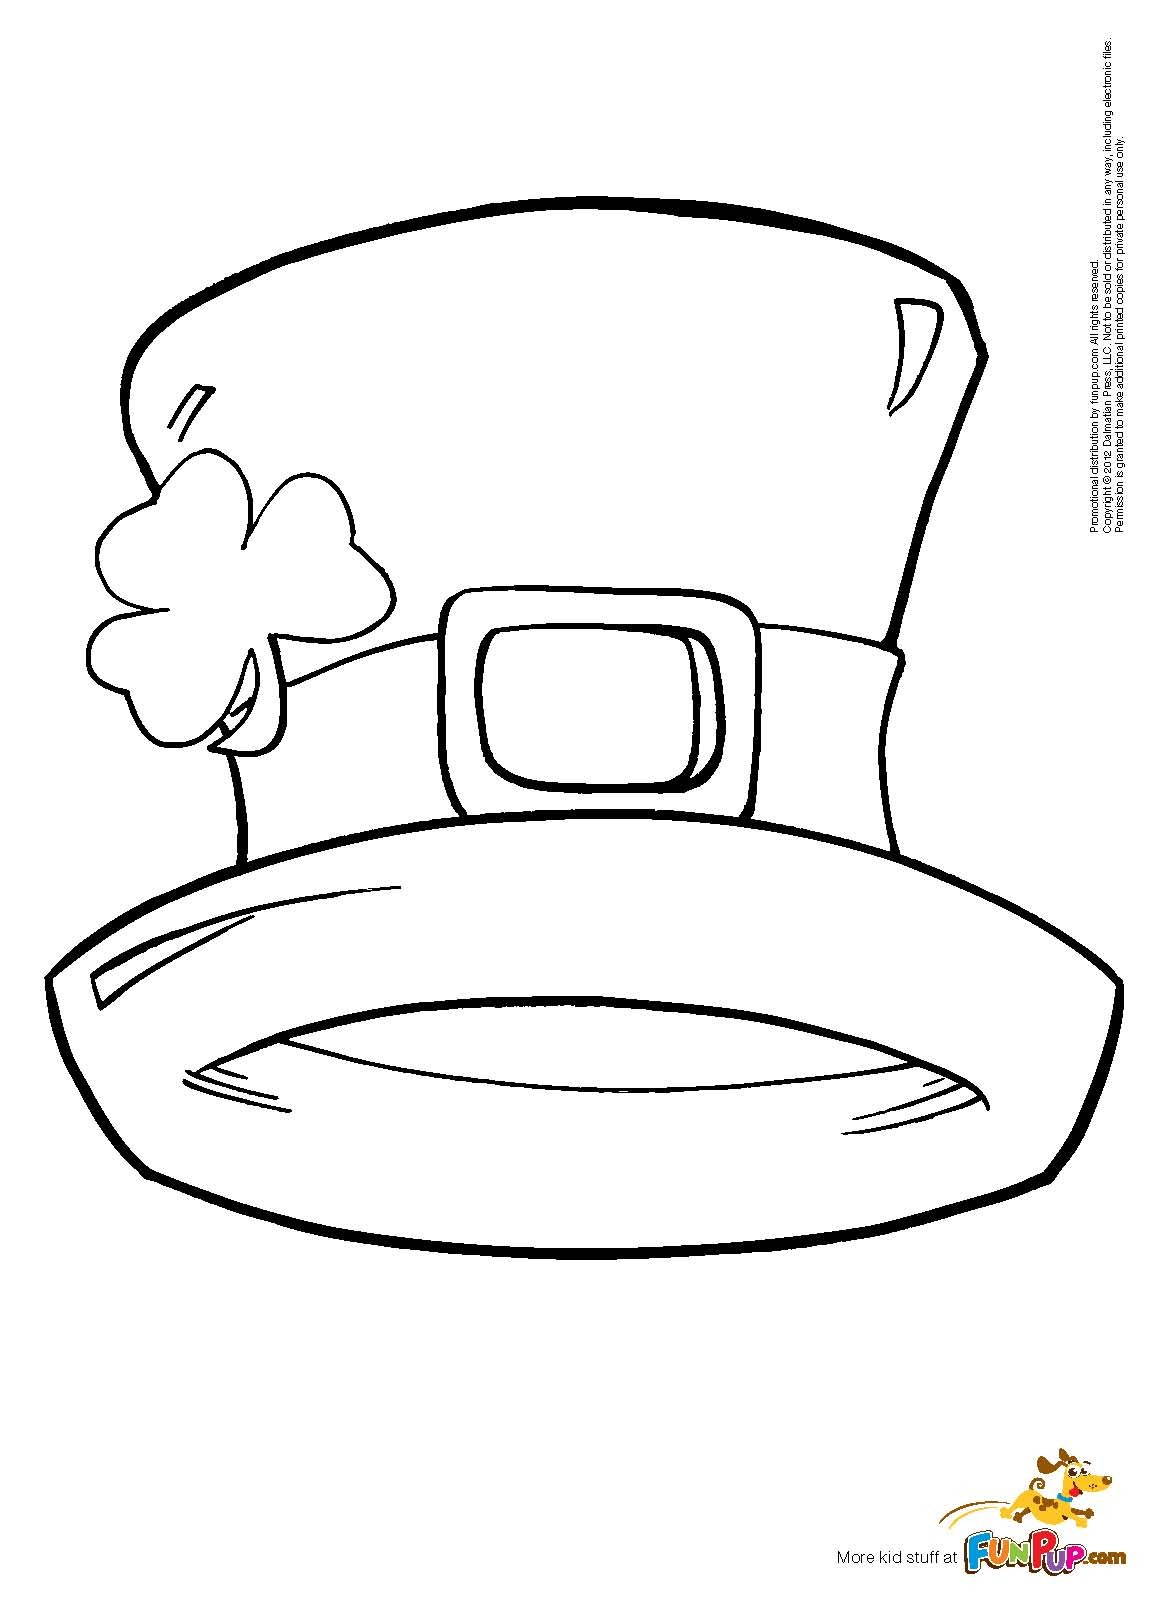 march coloring book pages - photo#9